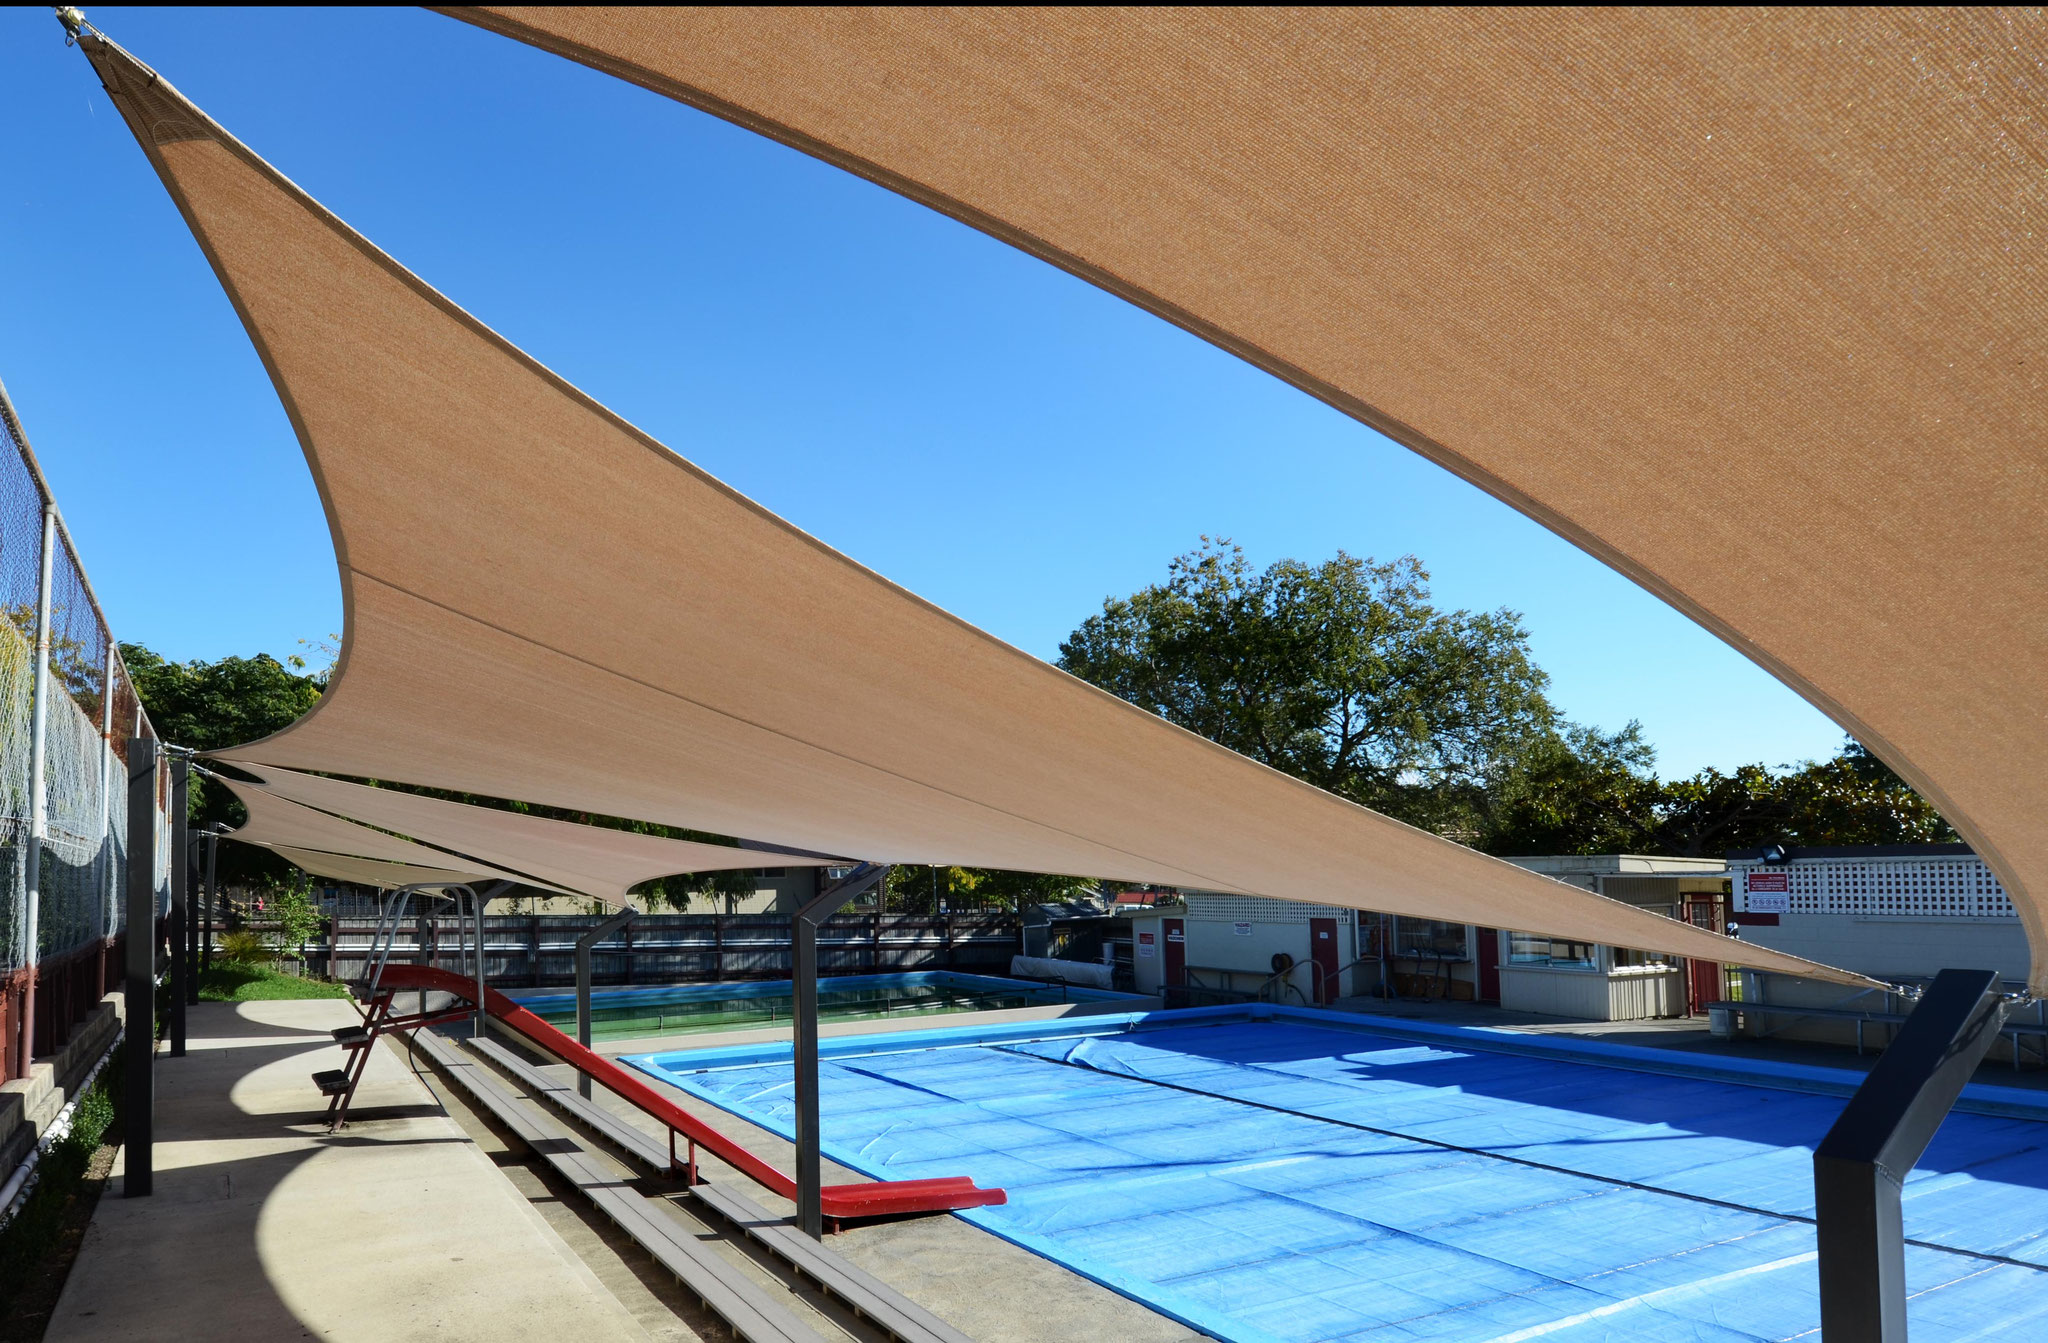 Hampton Street School Pool Shade